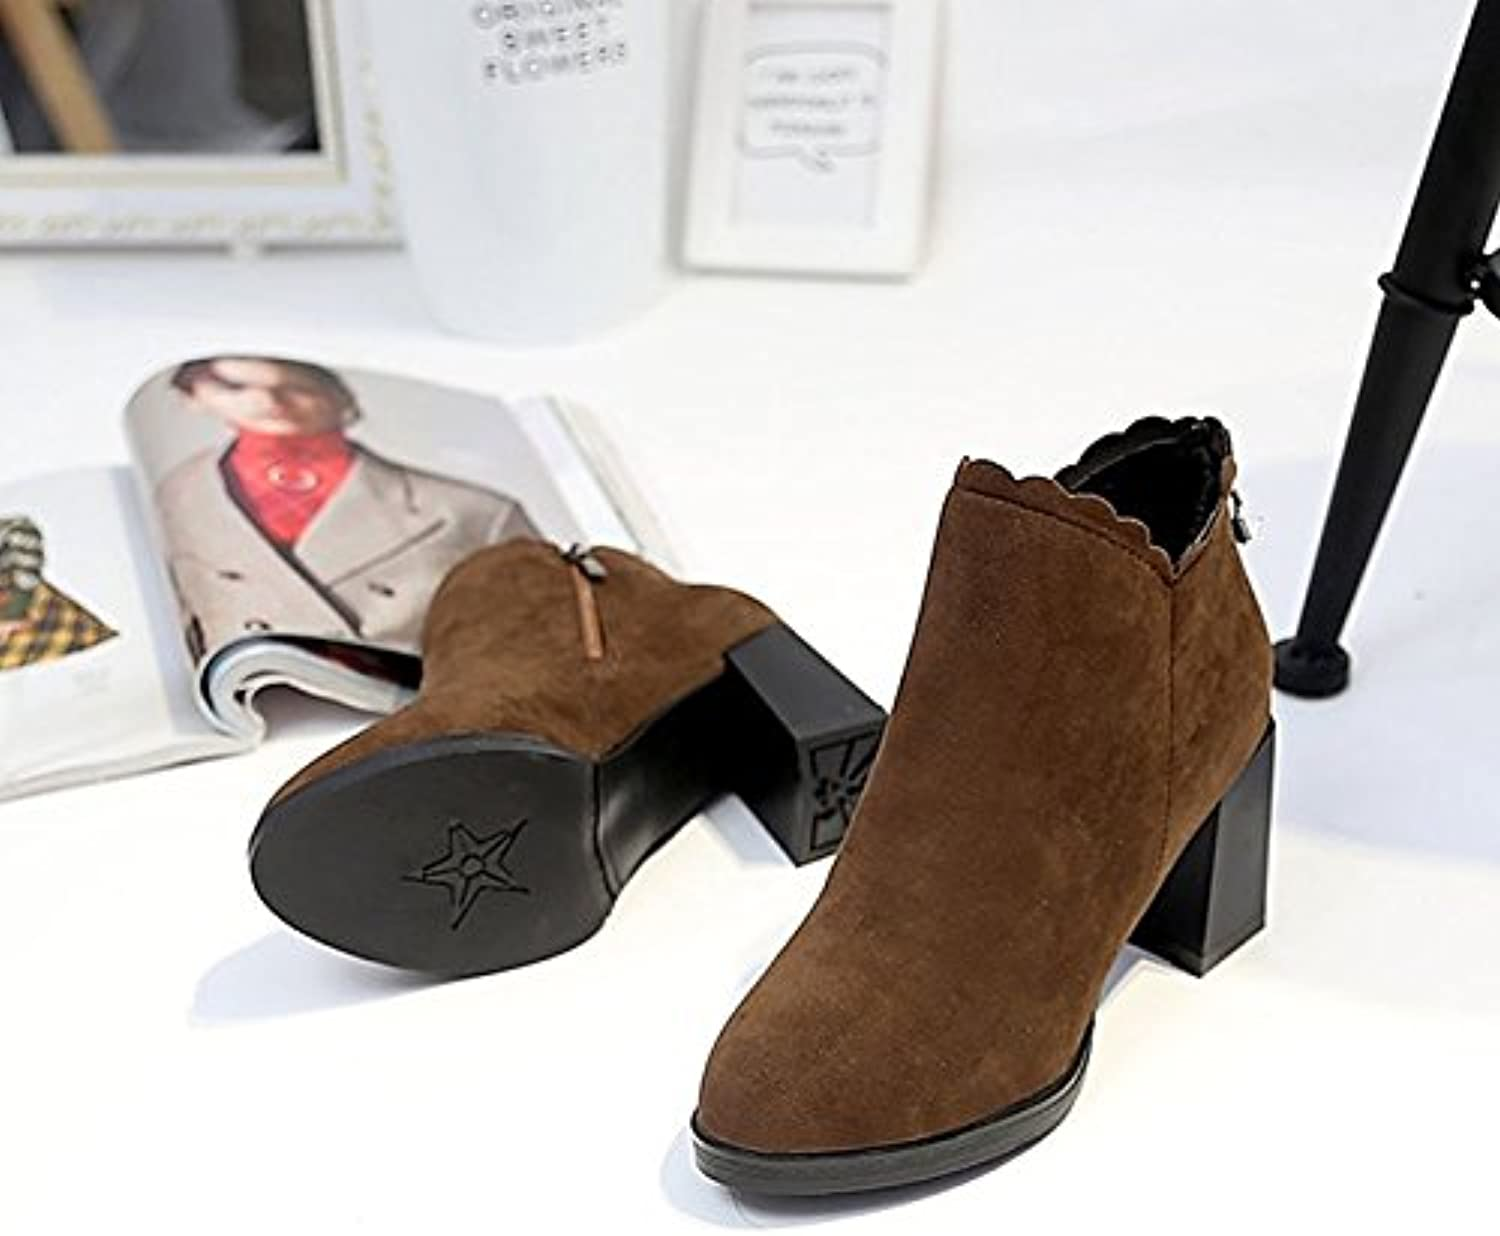 HSXZ Women's shoes PU Winter Fashion Boots Bootie Boots Chunky Heel Round Toe Booties Ankle Boots for Office\Career Dress Khaki Black